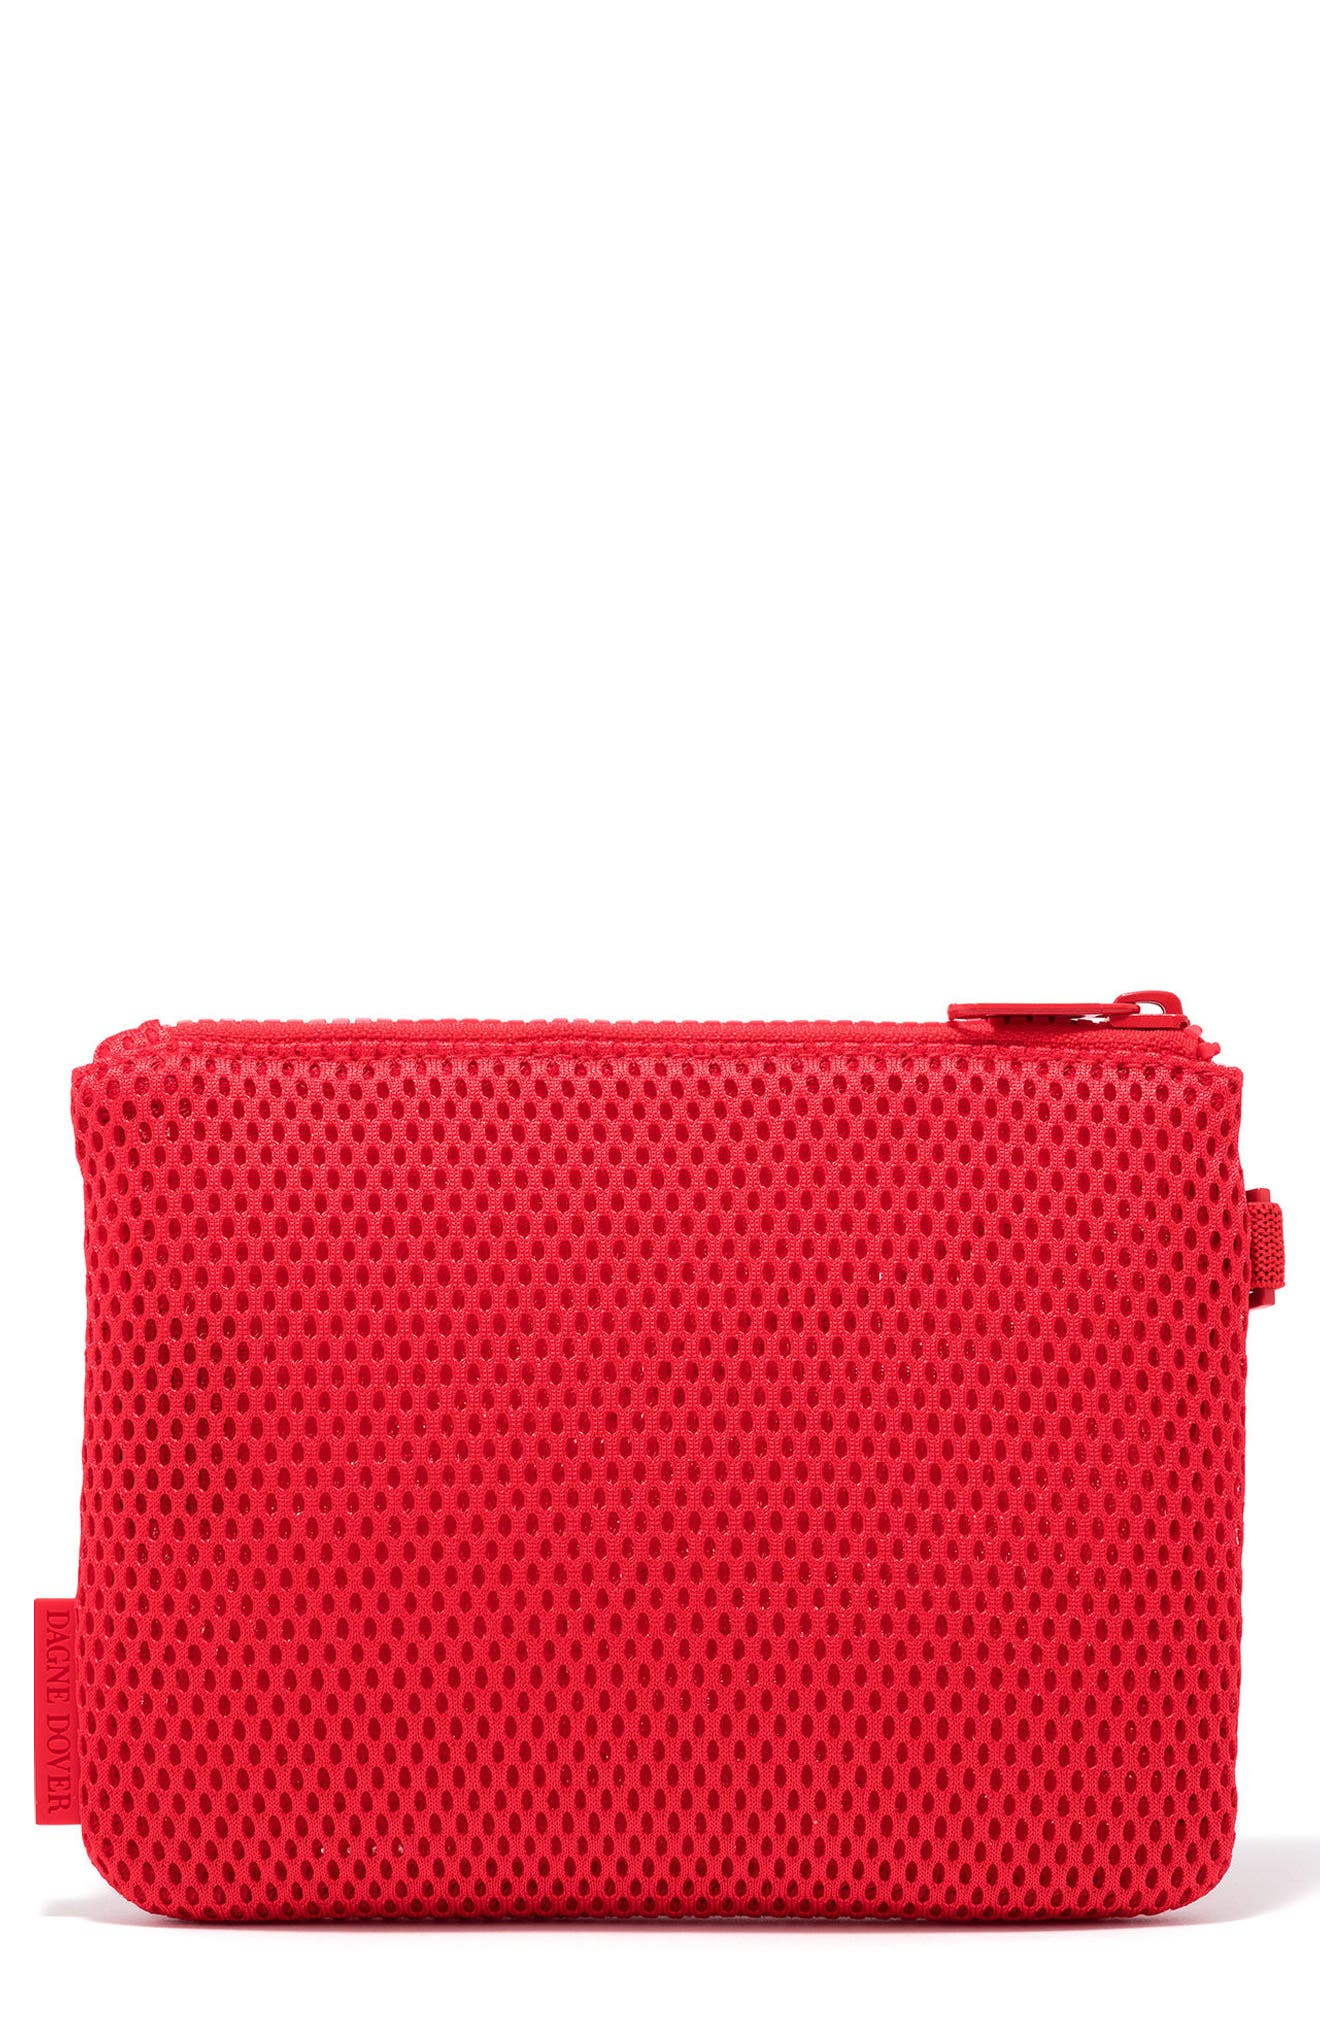 SMALL PARKER MESH POUCH - RED